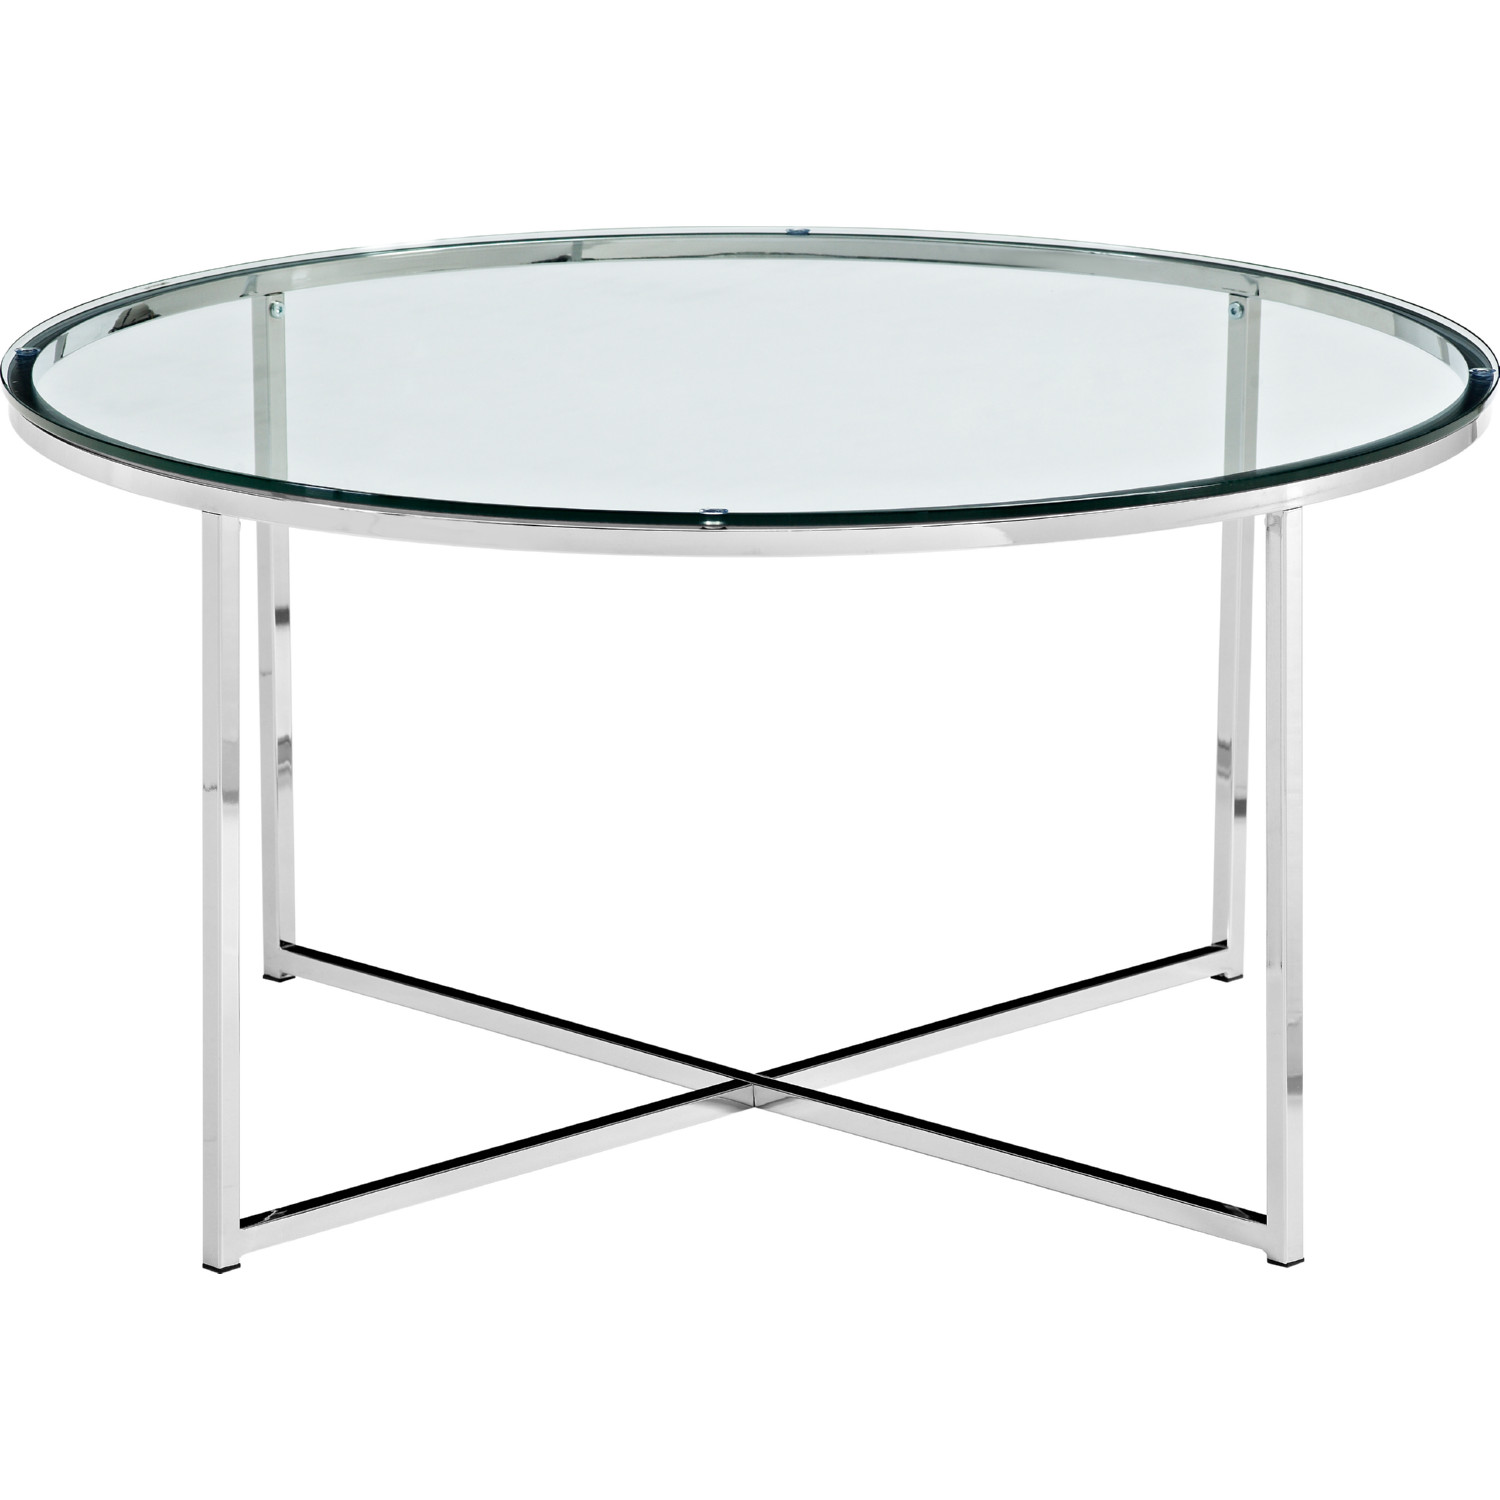 Mid Century Modern Coffee Table In Tempered Glass Chrome By Walker Edison